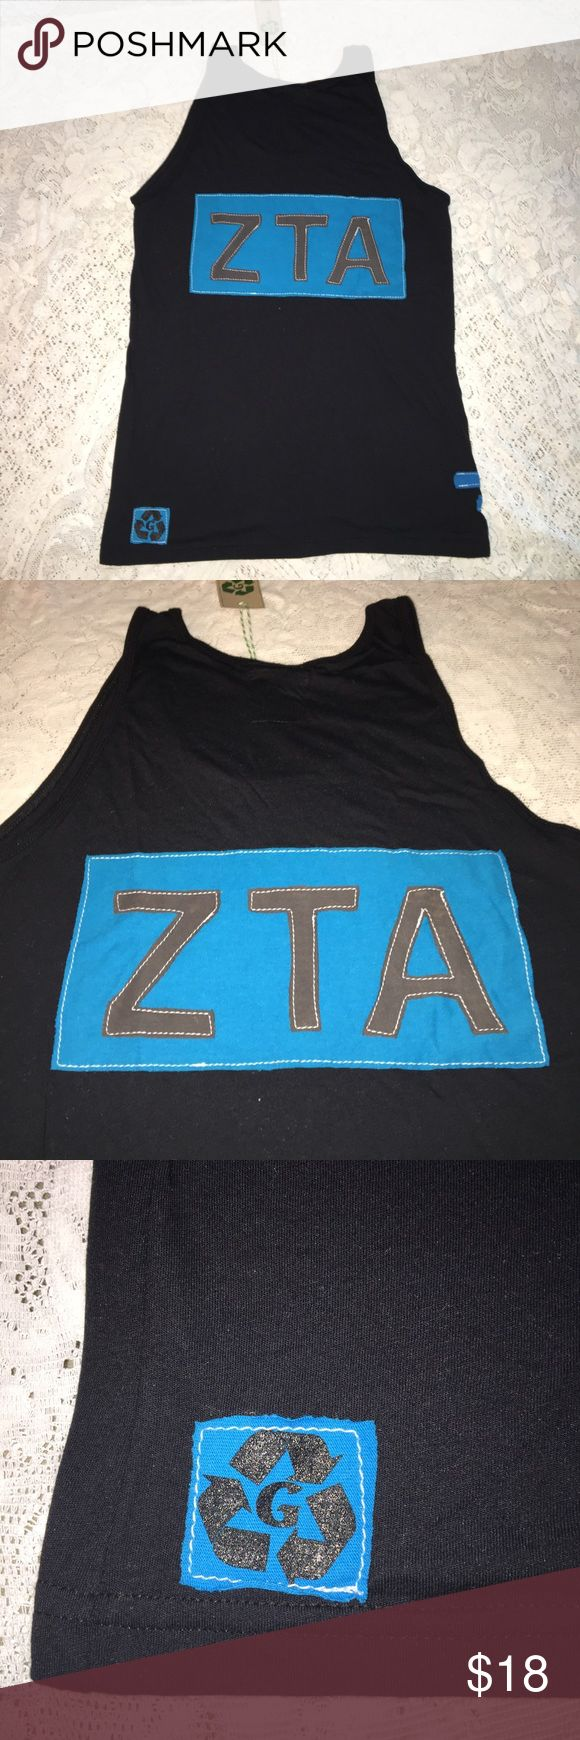 NWT Zeta Tau Alpha black and teal sorority tank M NWT Zeta Tau Alpha black & teal scoop neck tank top. Size AM. 50% cotton & 50% polyester. Teal sorority logo symbol on back. Solid front. Made in USA. $36 retail. Rare and one of a kind. #greek #life #college #university #zeta #tau #alpha #sorority #pledge #teal #black #big #little #sister #nwt #tank #new Never used. Smoke free home. Check closet for similar items & additional sororities. ❌no trades❌ FIRM Tops Tank Tops